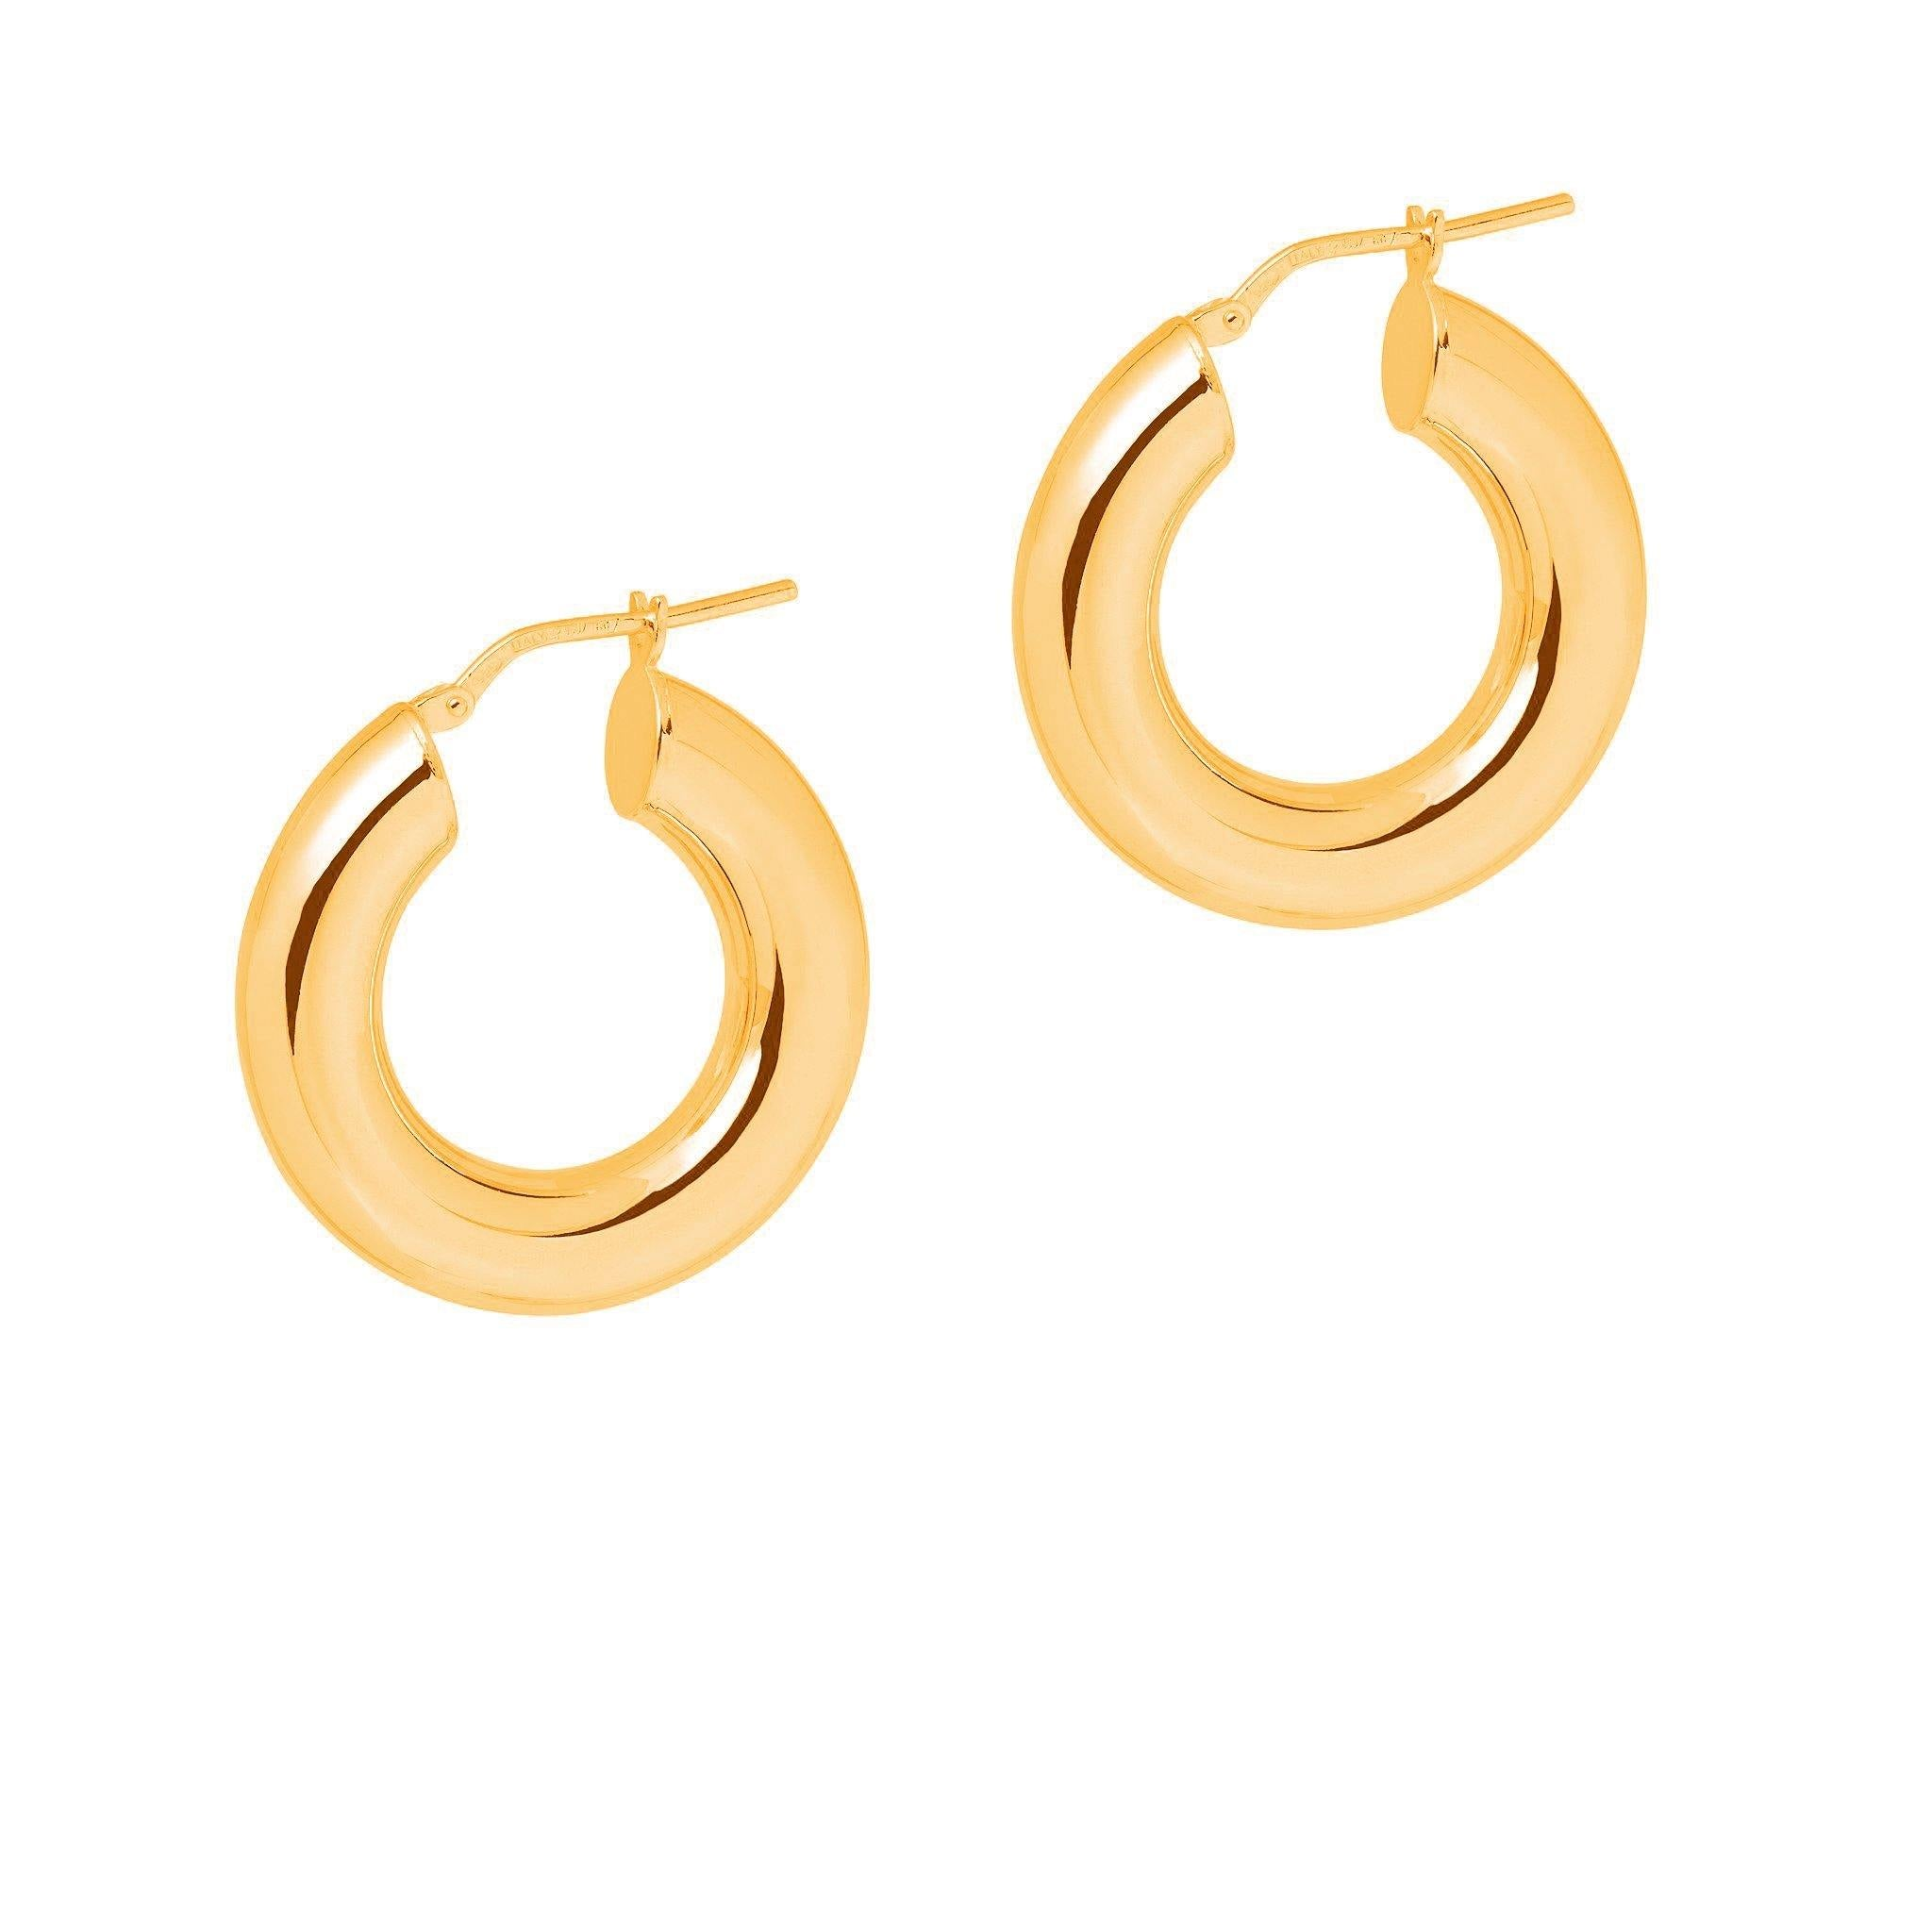 La CURVACEOUS - Gold - Now in 5 x sizes! - The Hoop Station 925 Sterling Silver Hoop Earrings Gold Huggies